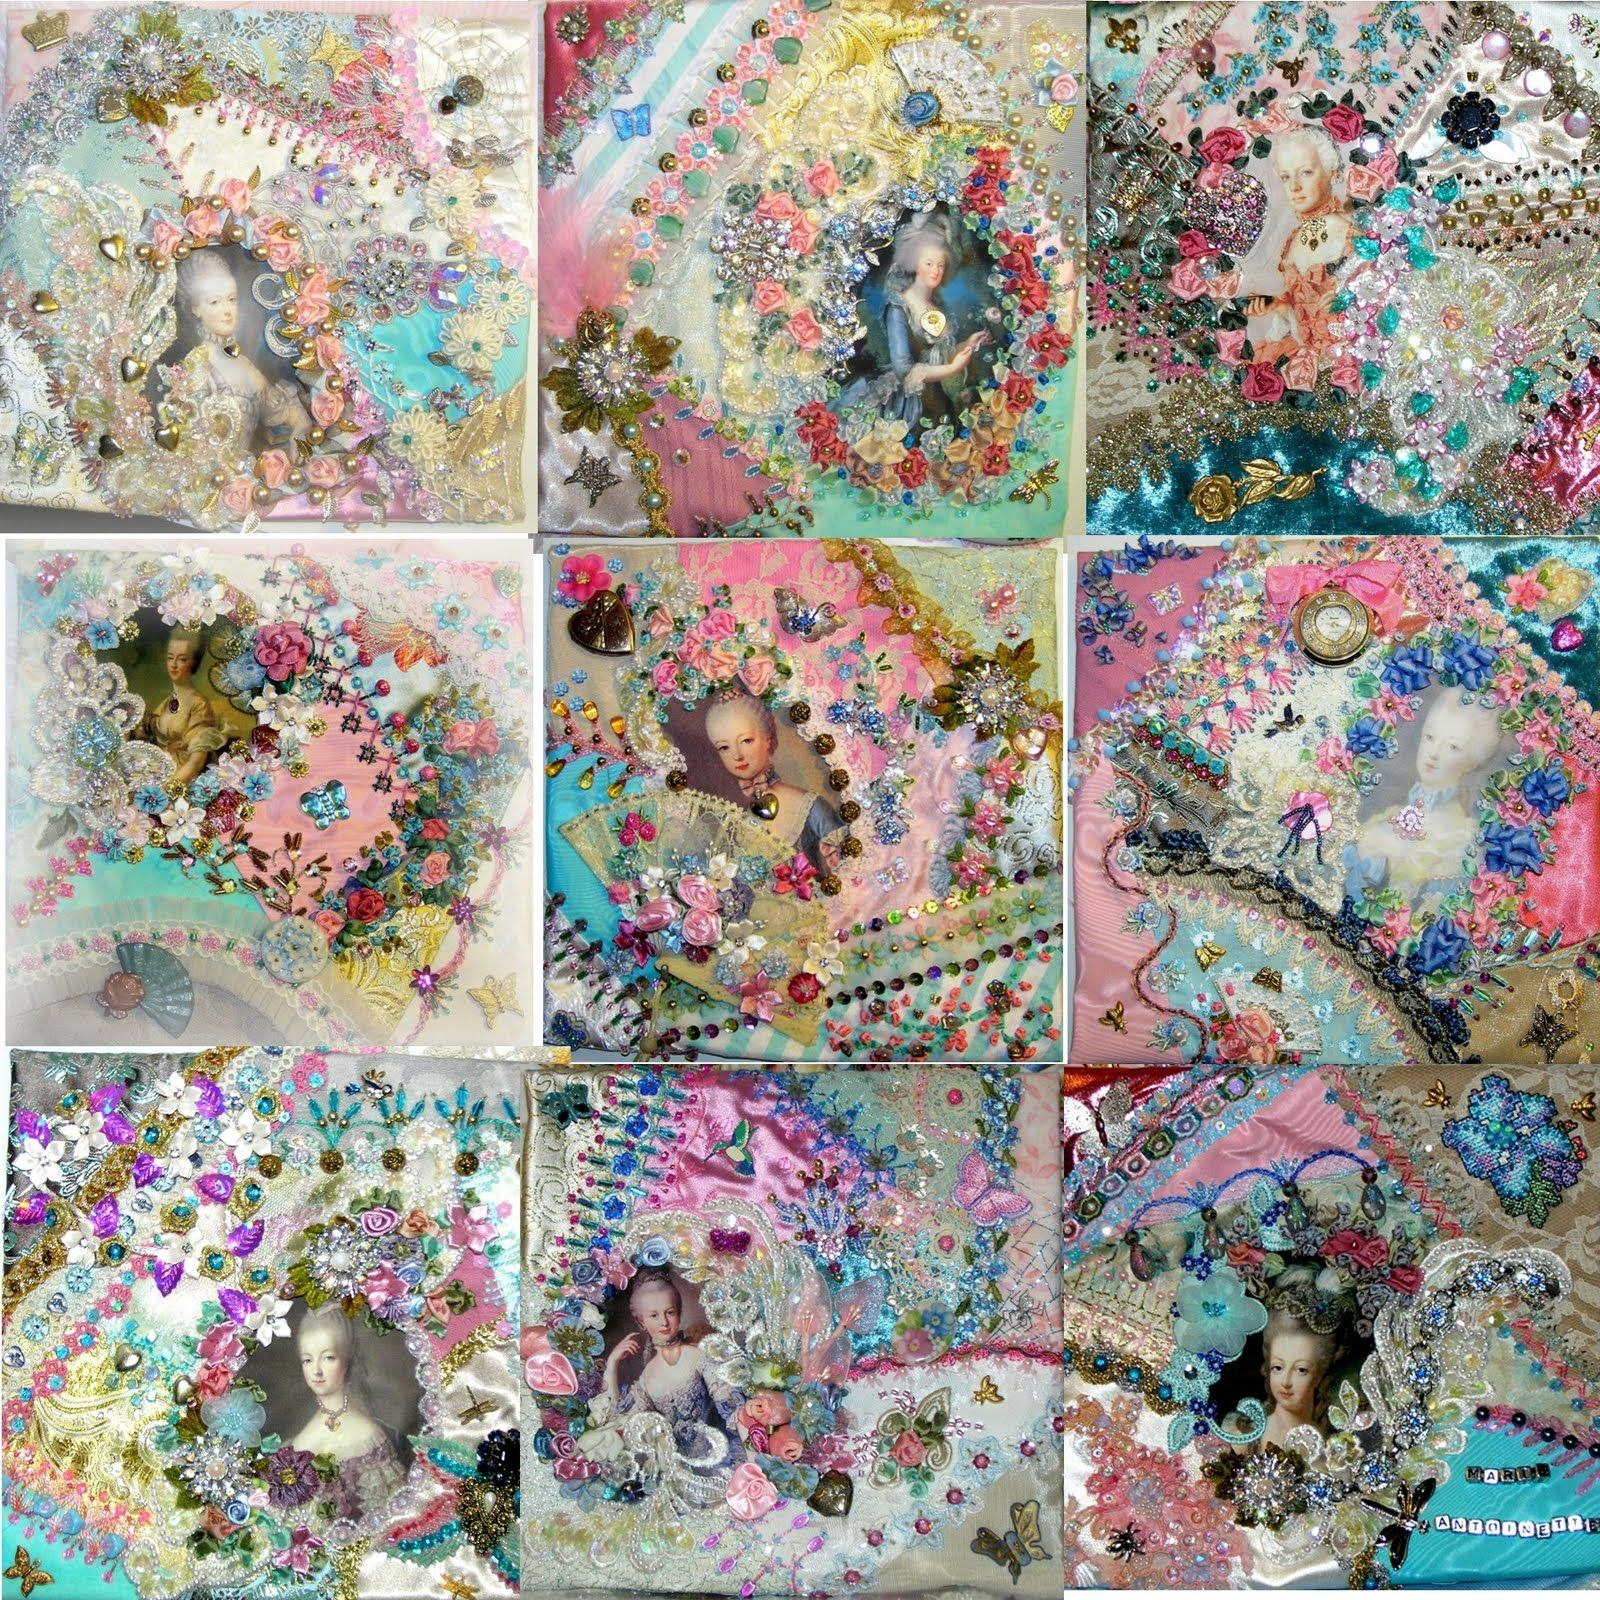 Crazy Quilting And Embroidery Blog By Pamela Kellogg Of Kitty And Me  Designs: Marie Antoinette